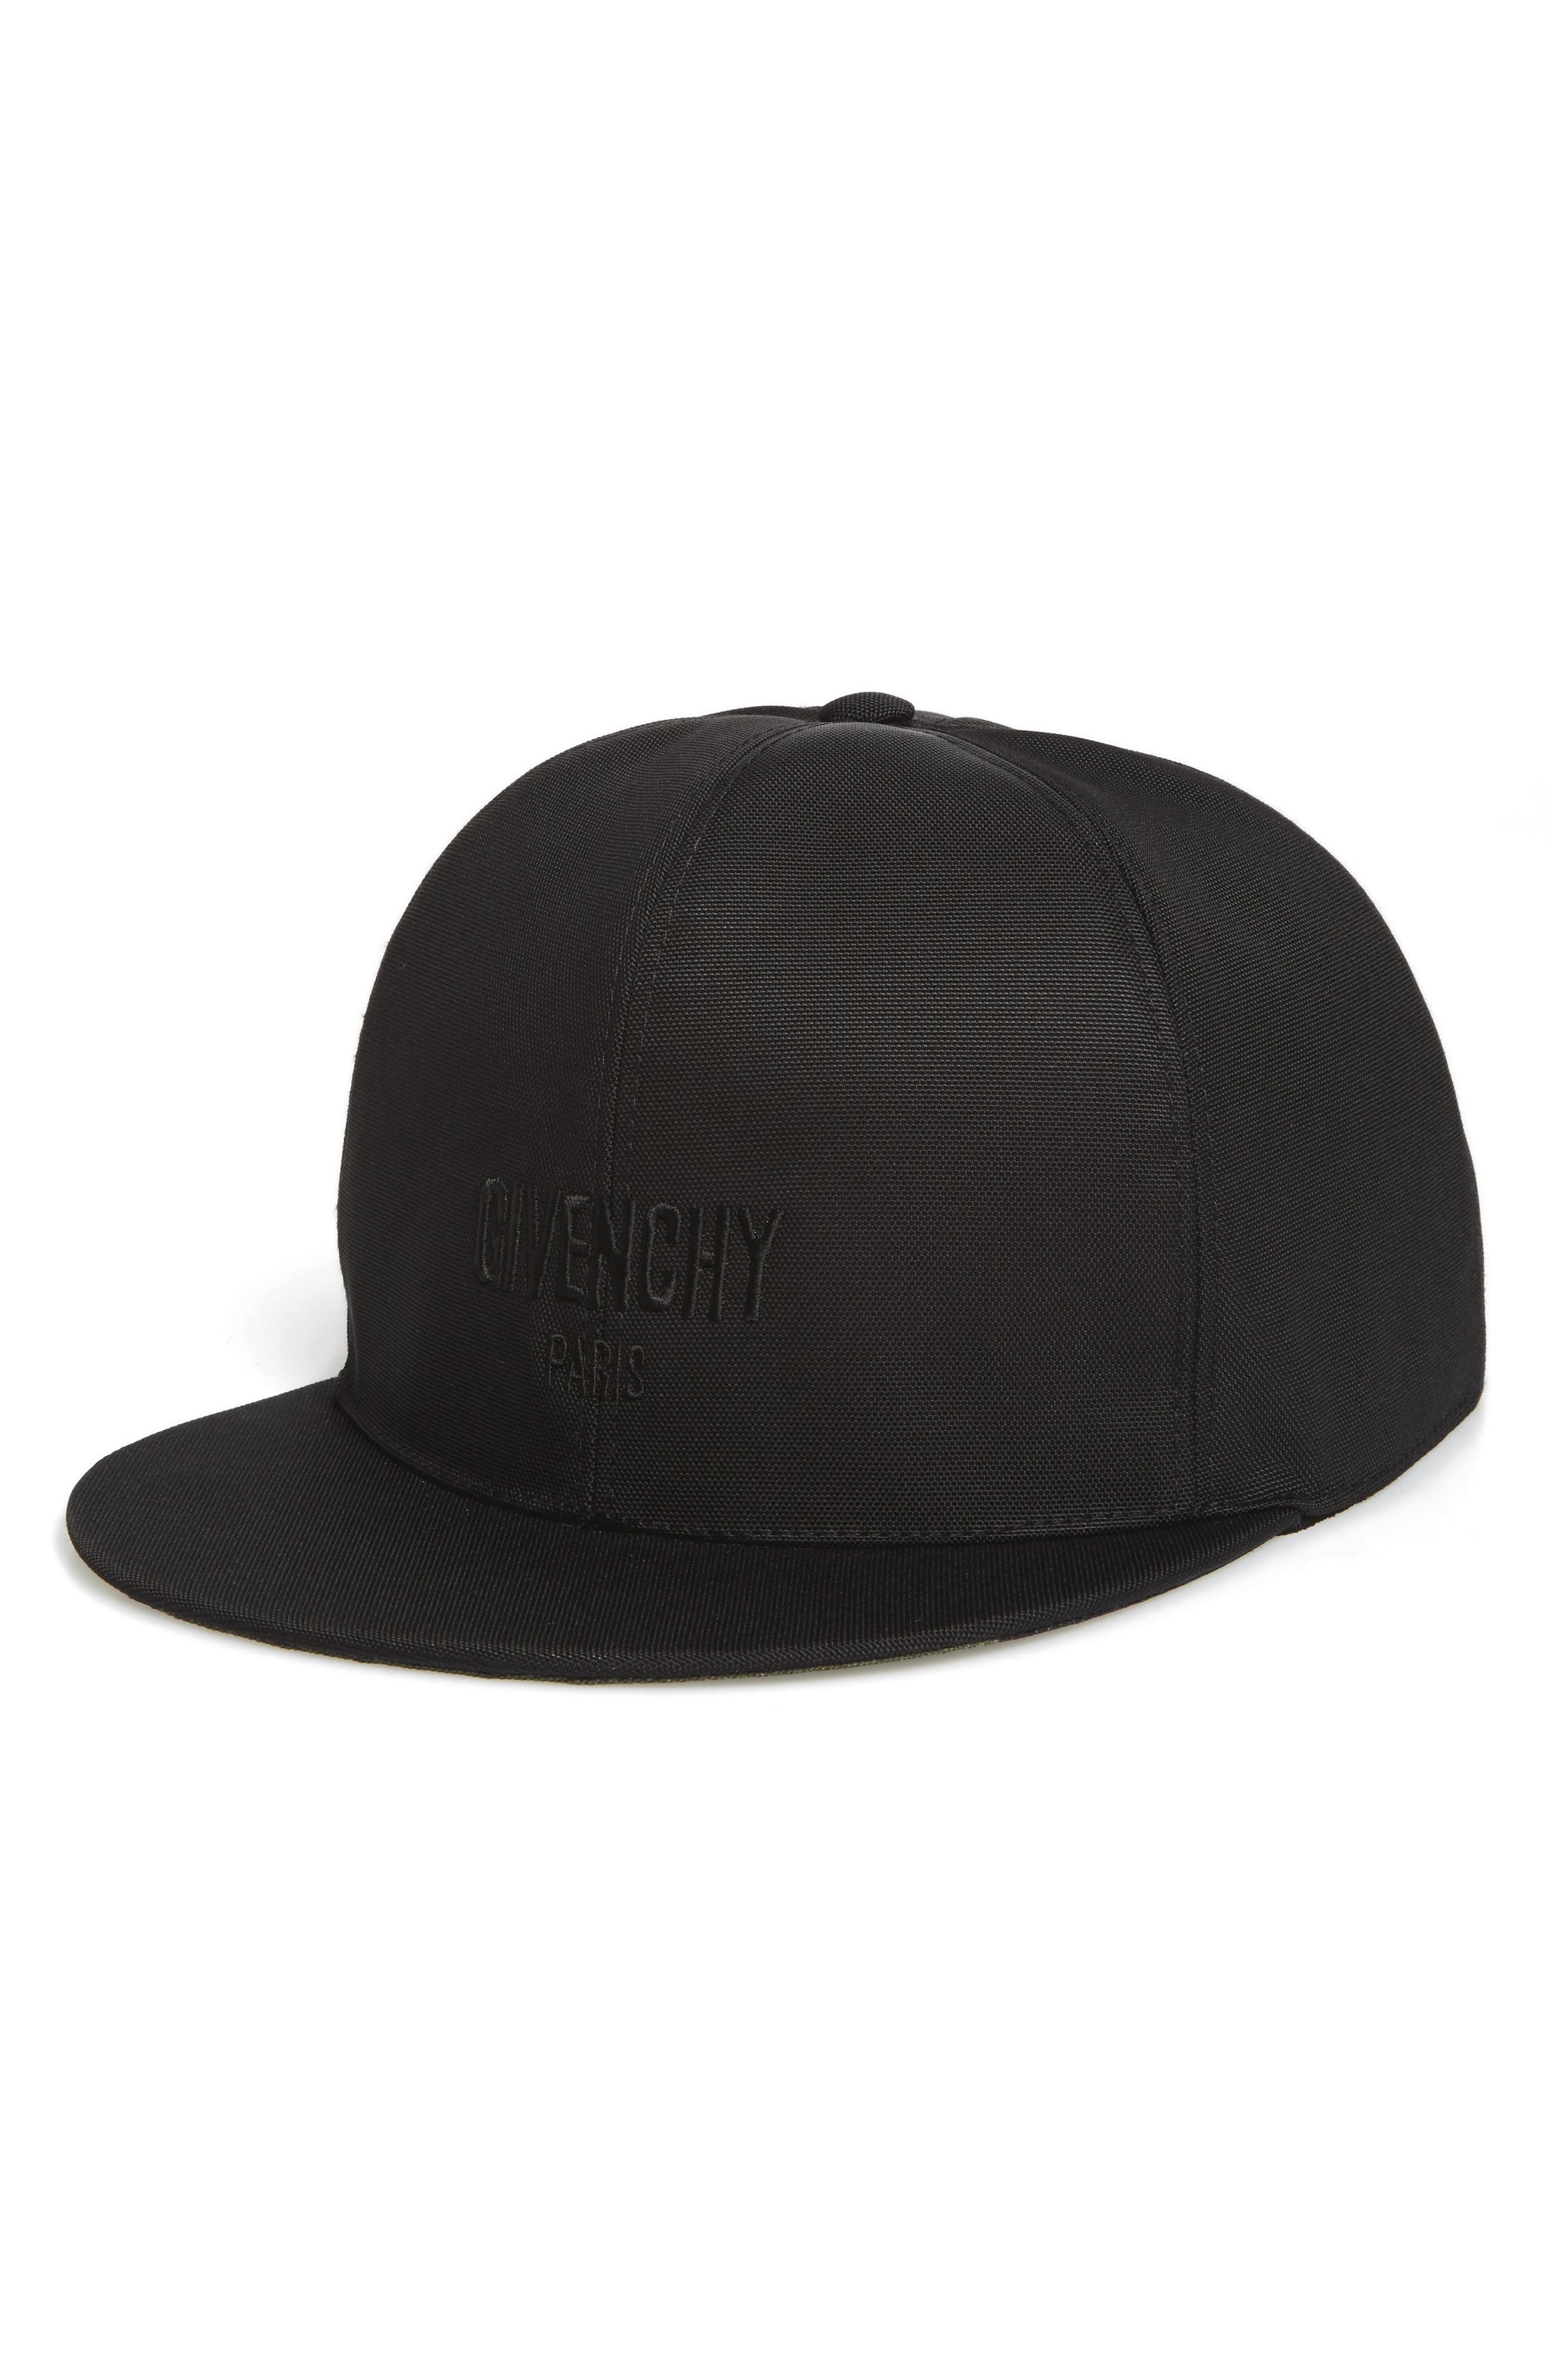 Alternate Image 1 Selected - Givenchy Embroidered Baseball Cap